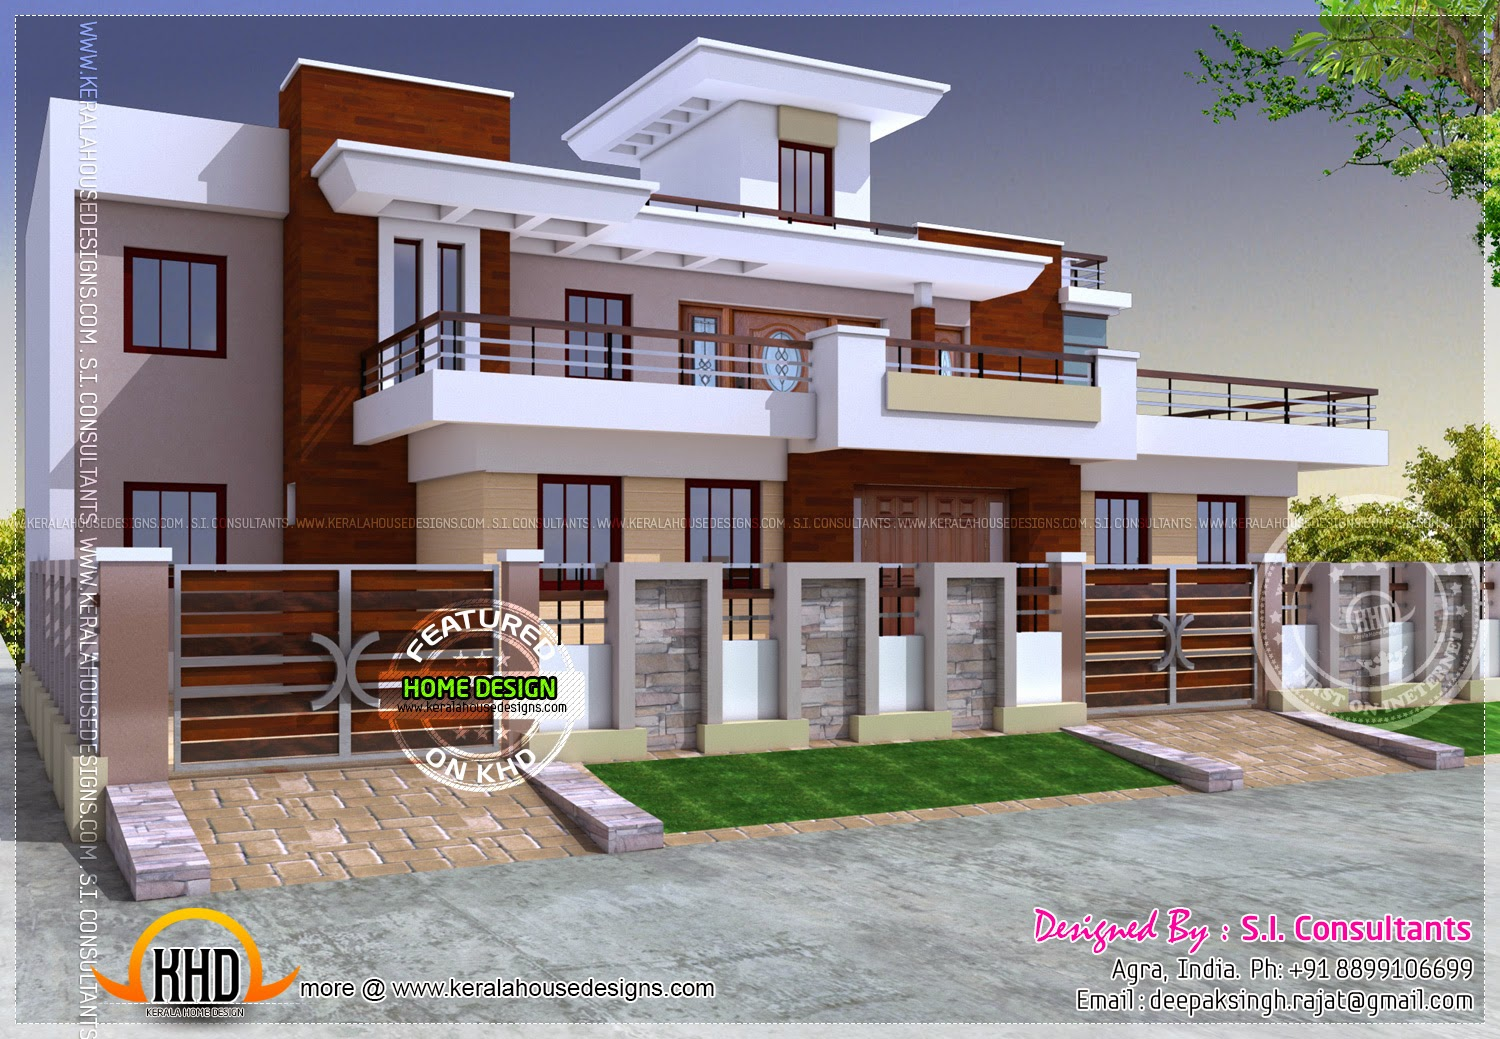 Modern style india house plan kerala home design and for House design indian style plan and elevation